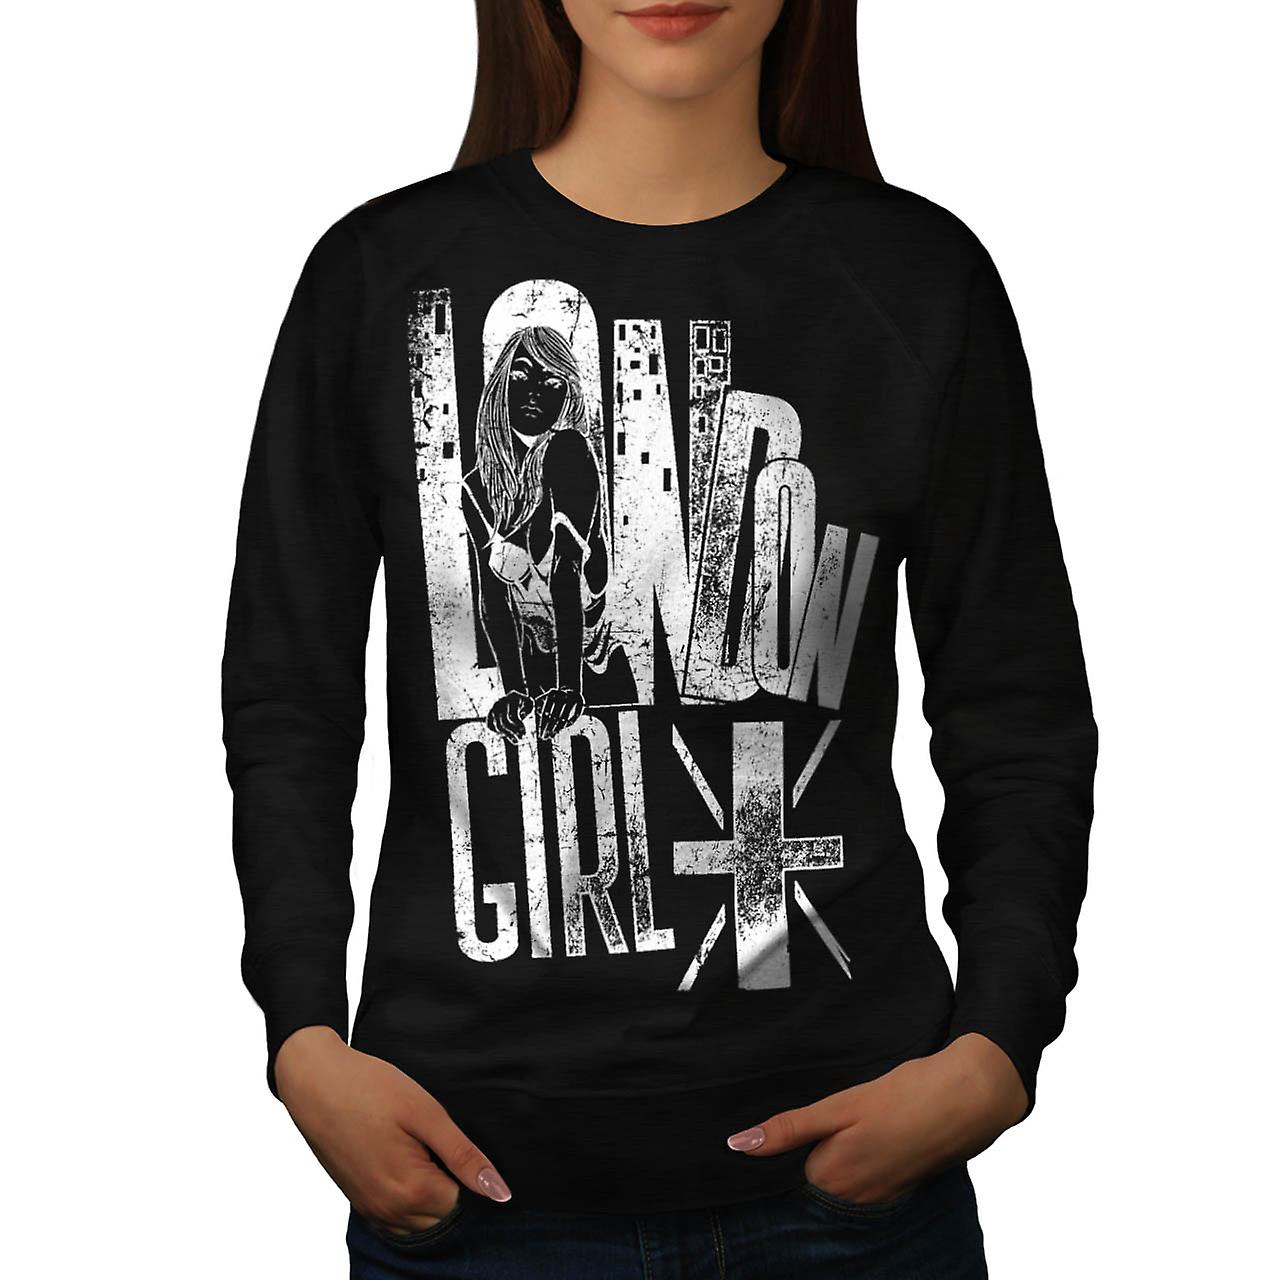 Royal London Girl UK Groot-Brittannië GB vrouwen zwart Sweatshirt | Wellcoda